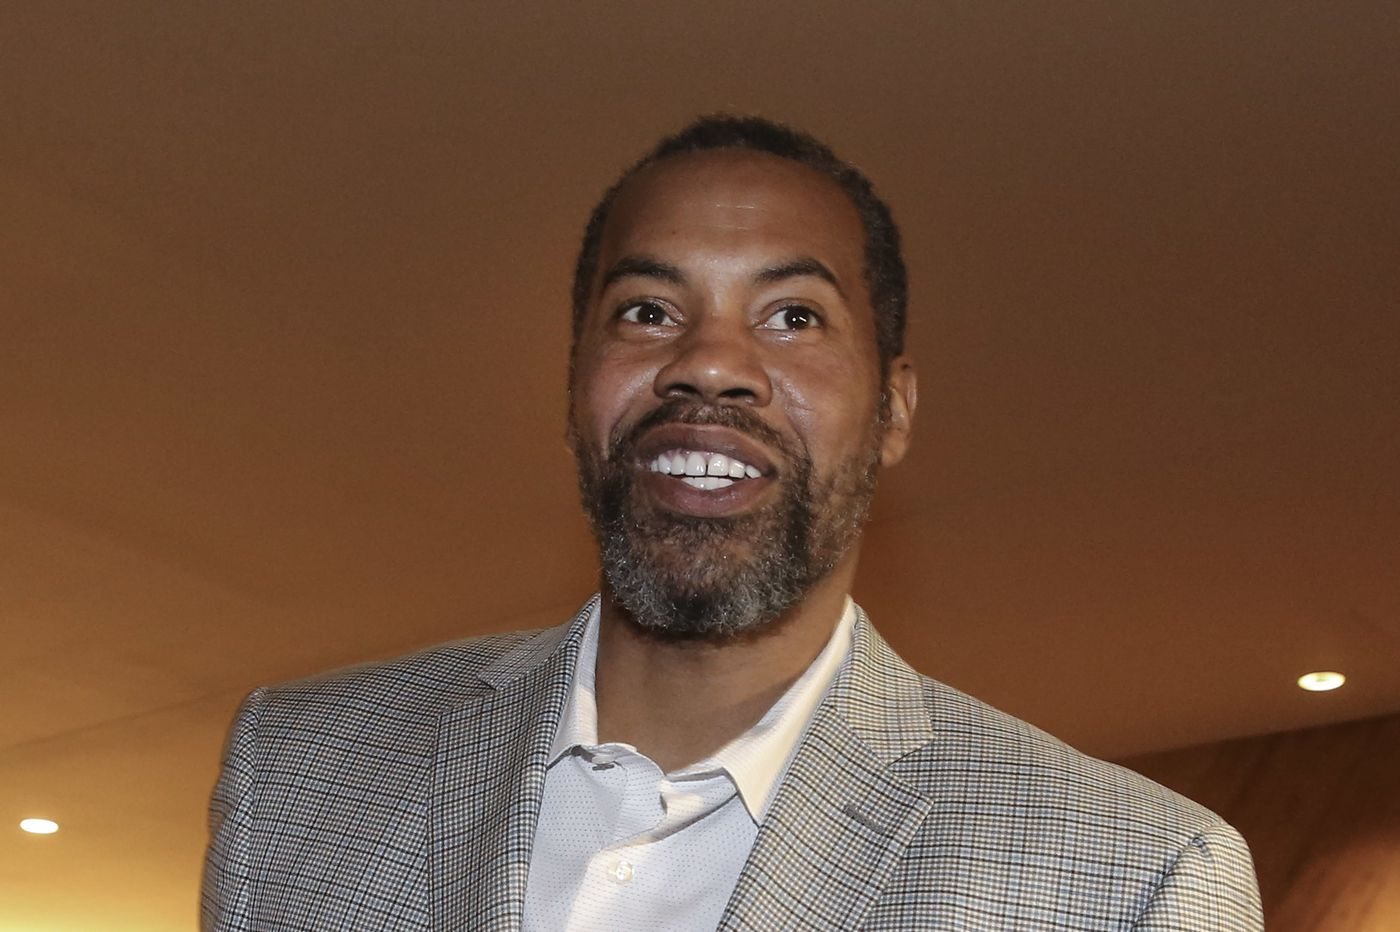 Rasheed Wallace left Philly behind, but he also brought a part of it with him during a 16-year NBA career